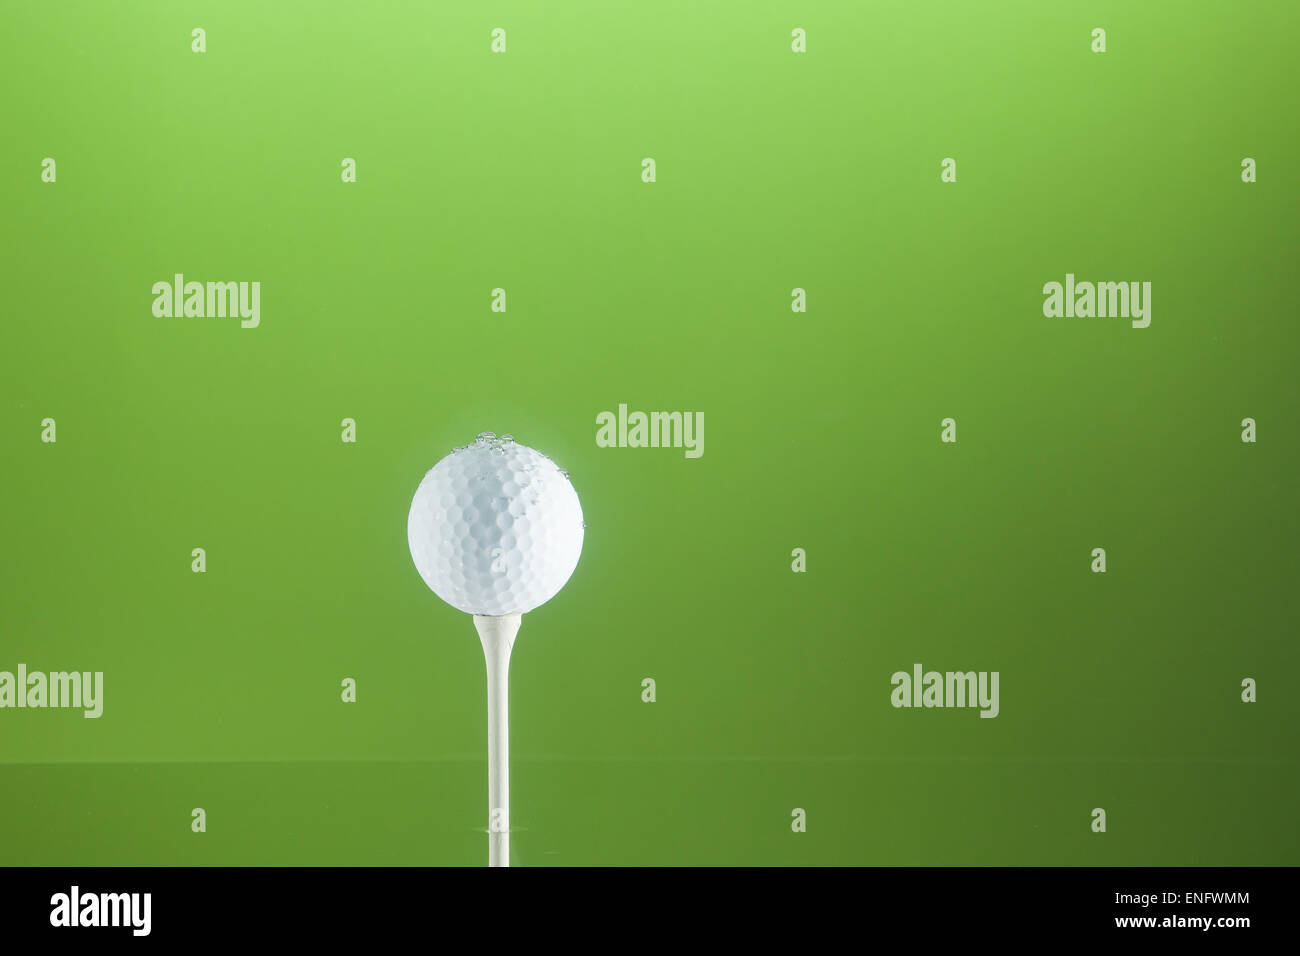 Golfball on a peg in water. - Stock Image